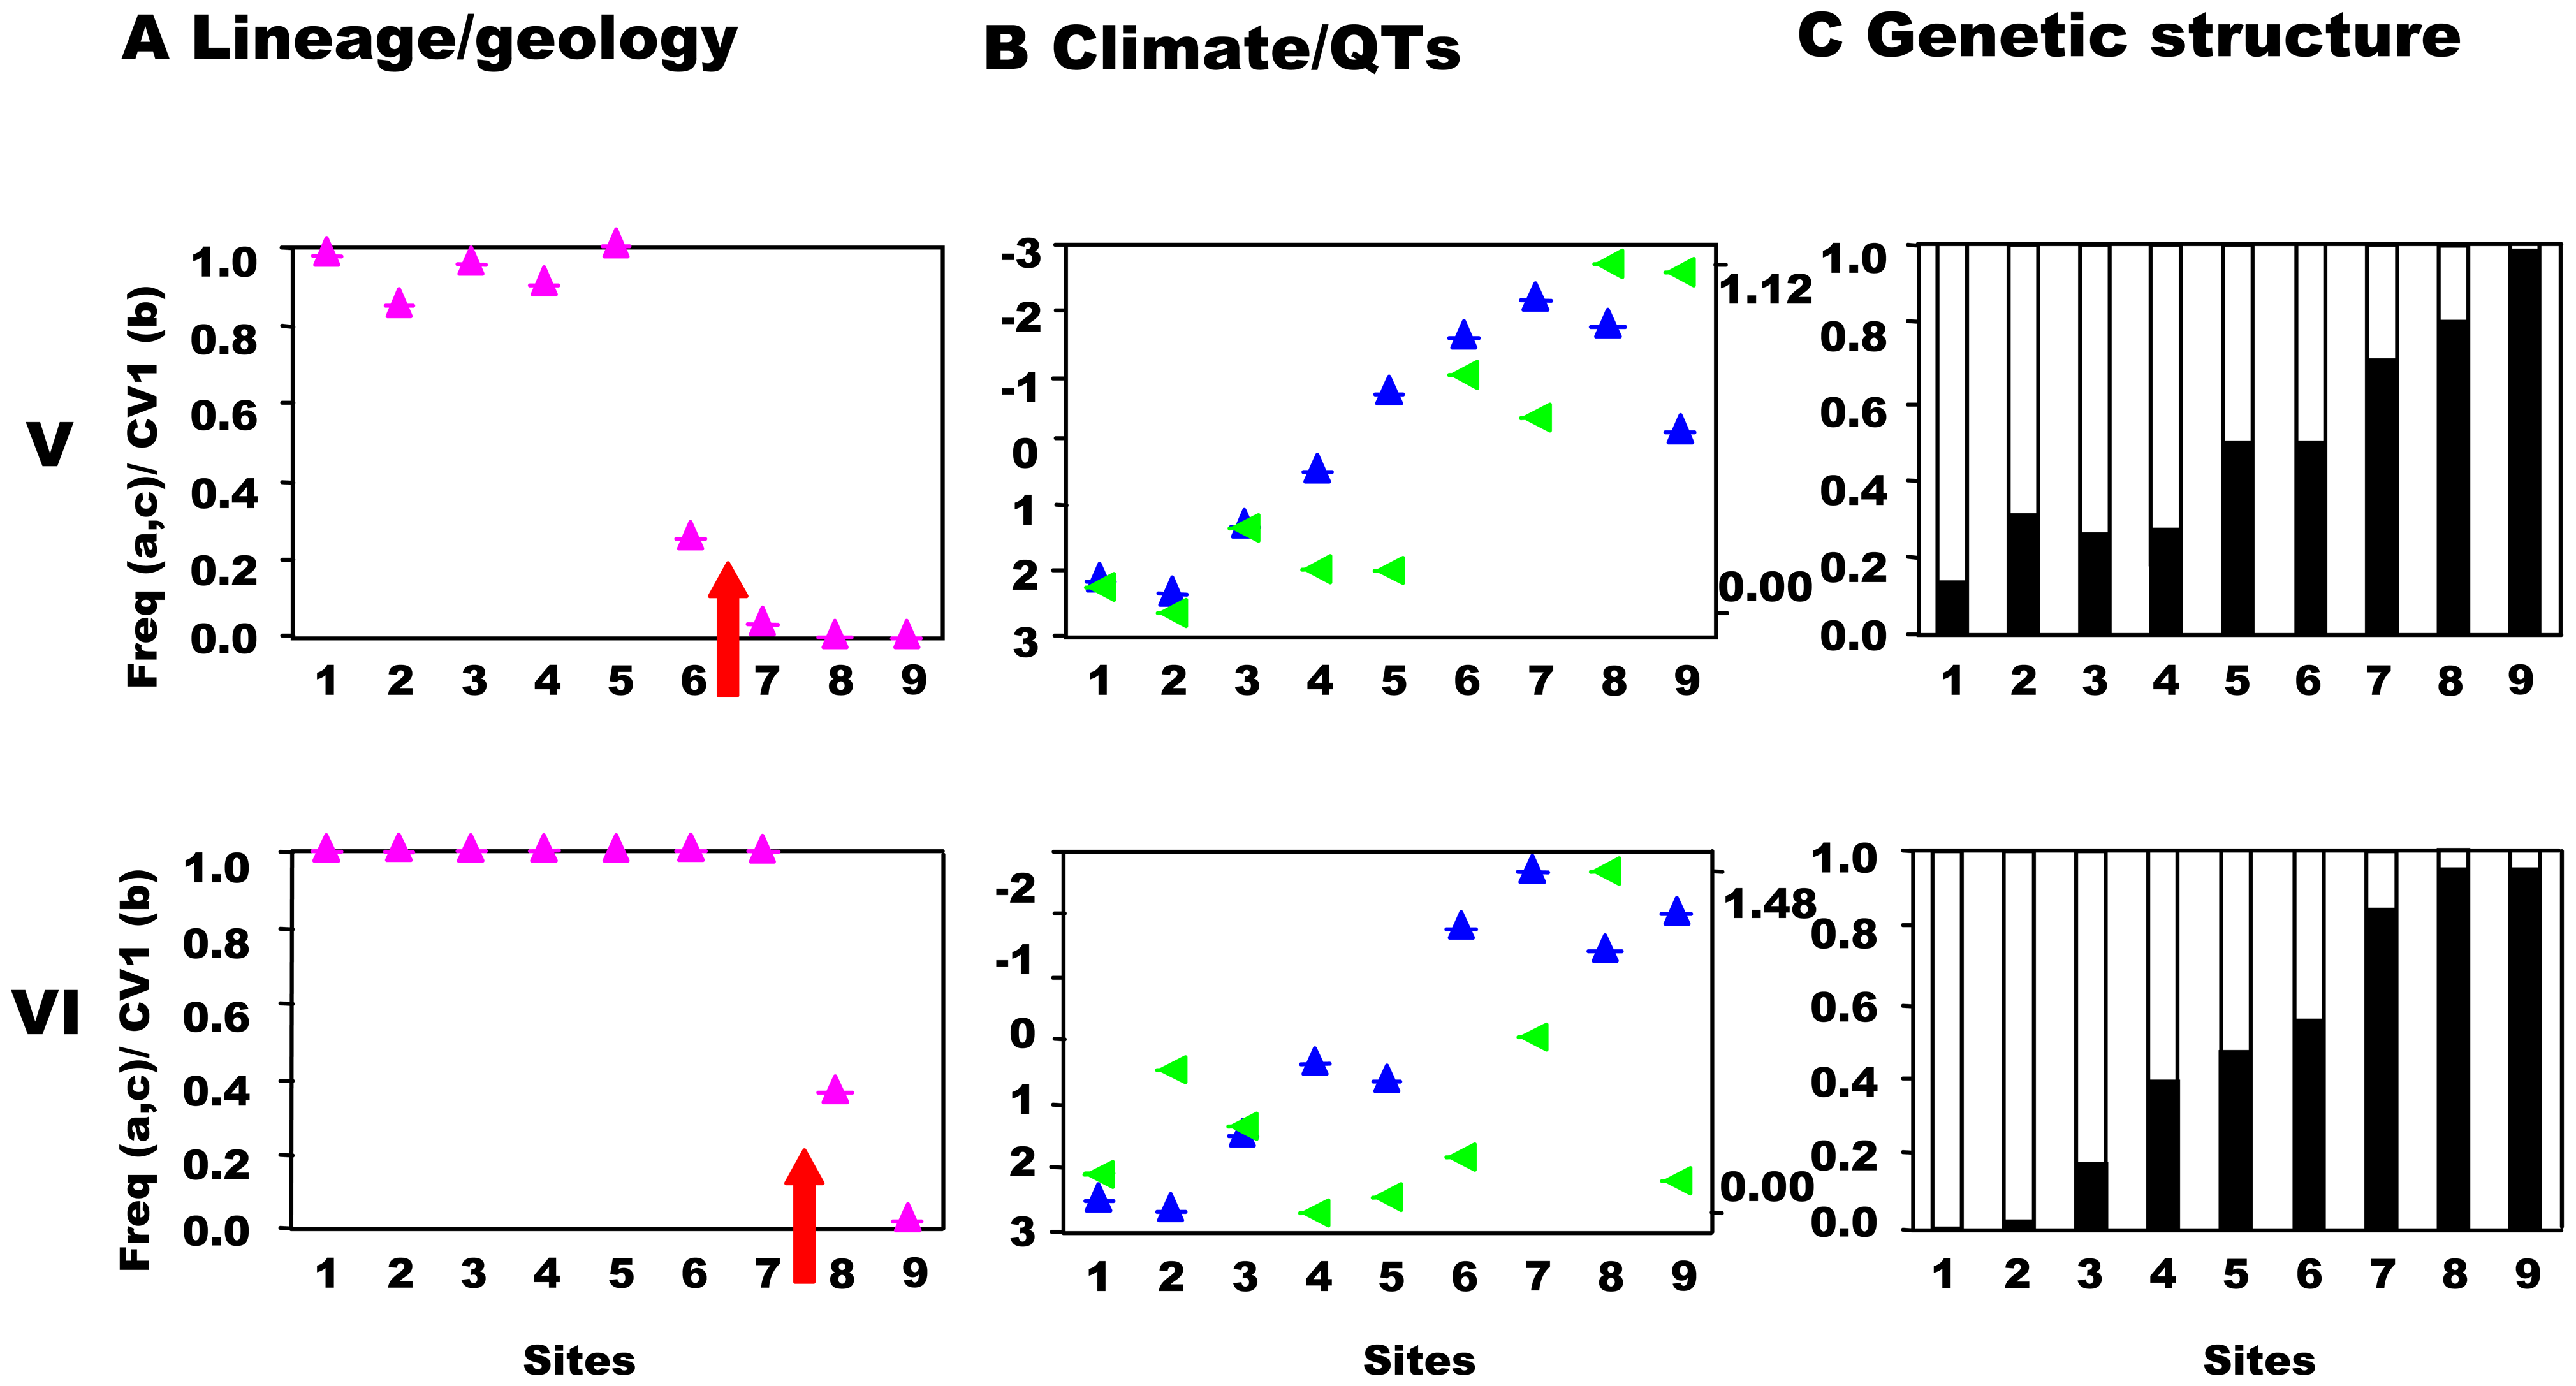 Southwest-central precursor islands: lineages, quantitative traits, and genetic structure along transects.